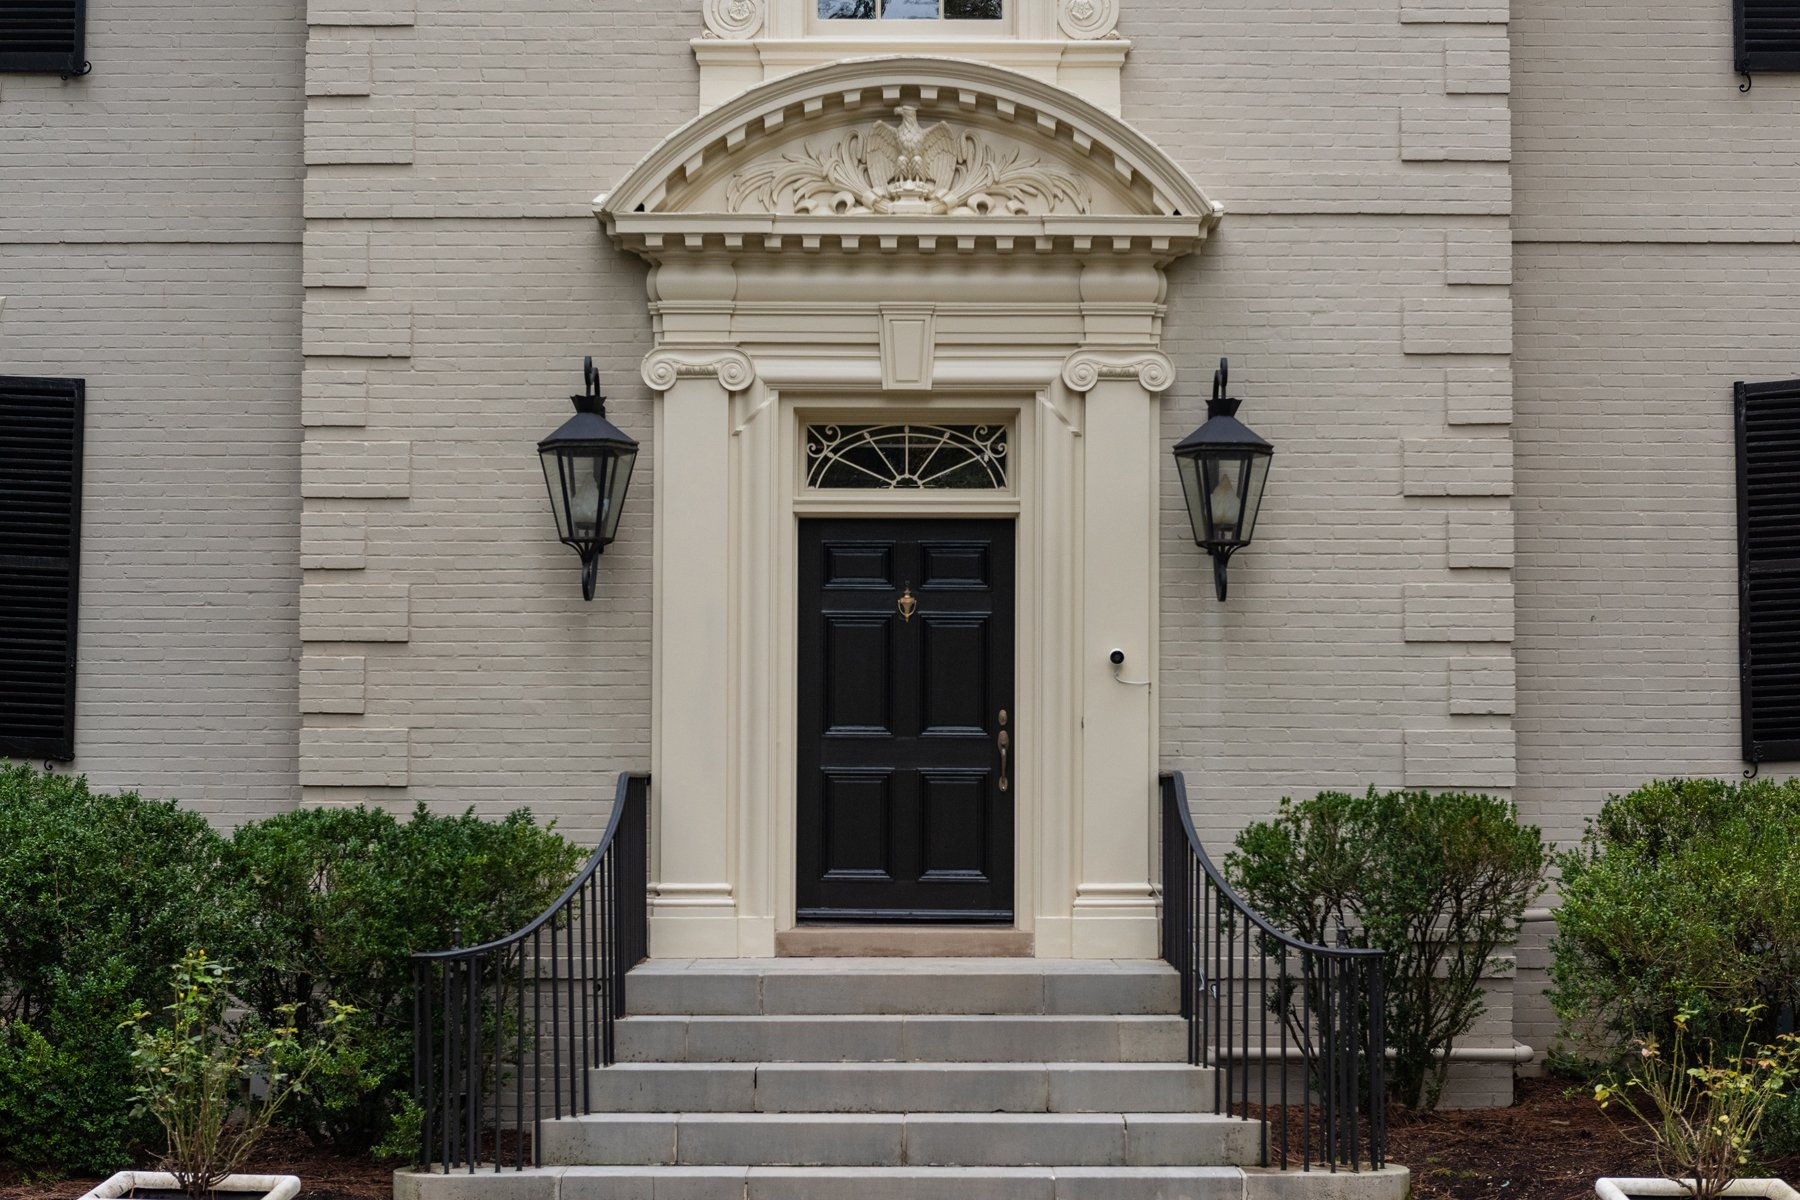 A closeup view of the black front door, elaborate trim surround and masonry steps with black iron railings.